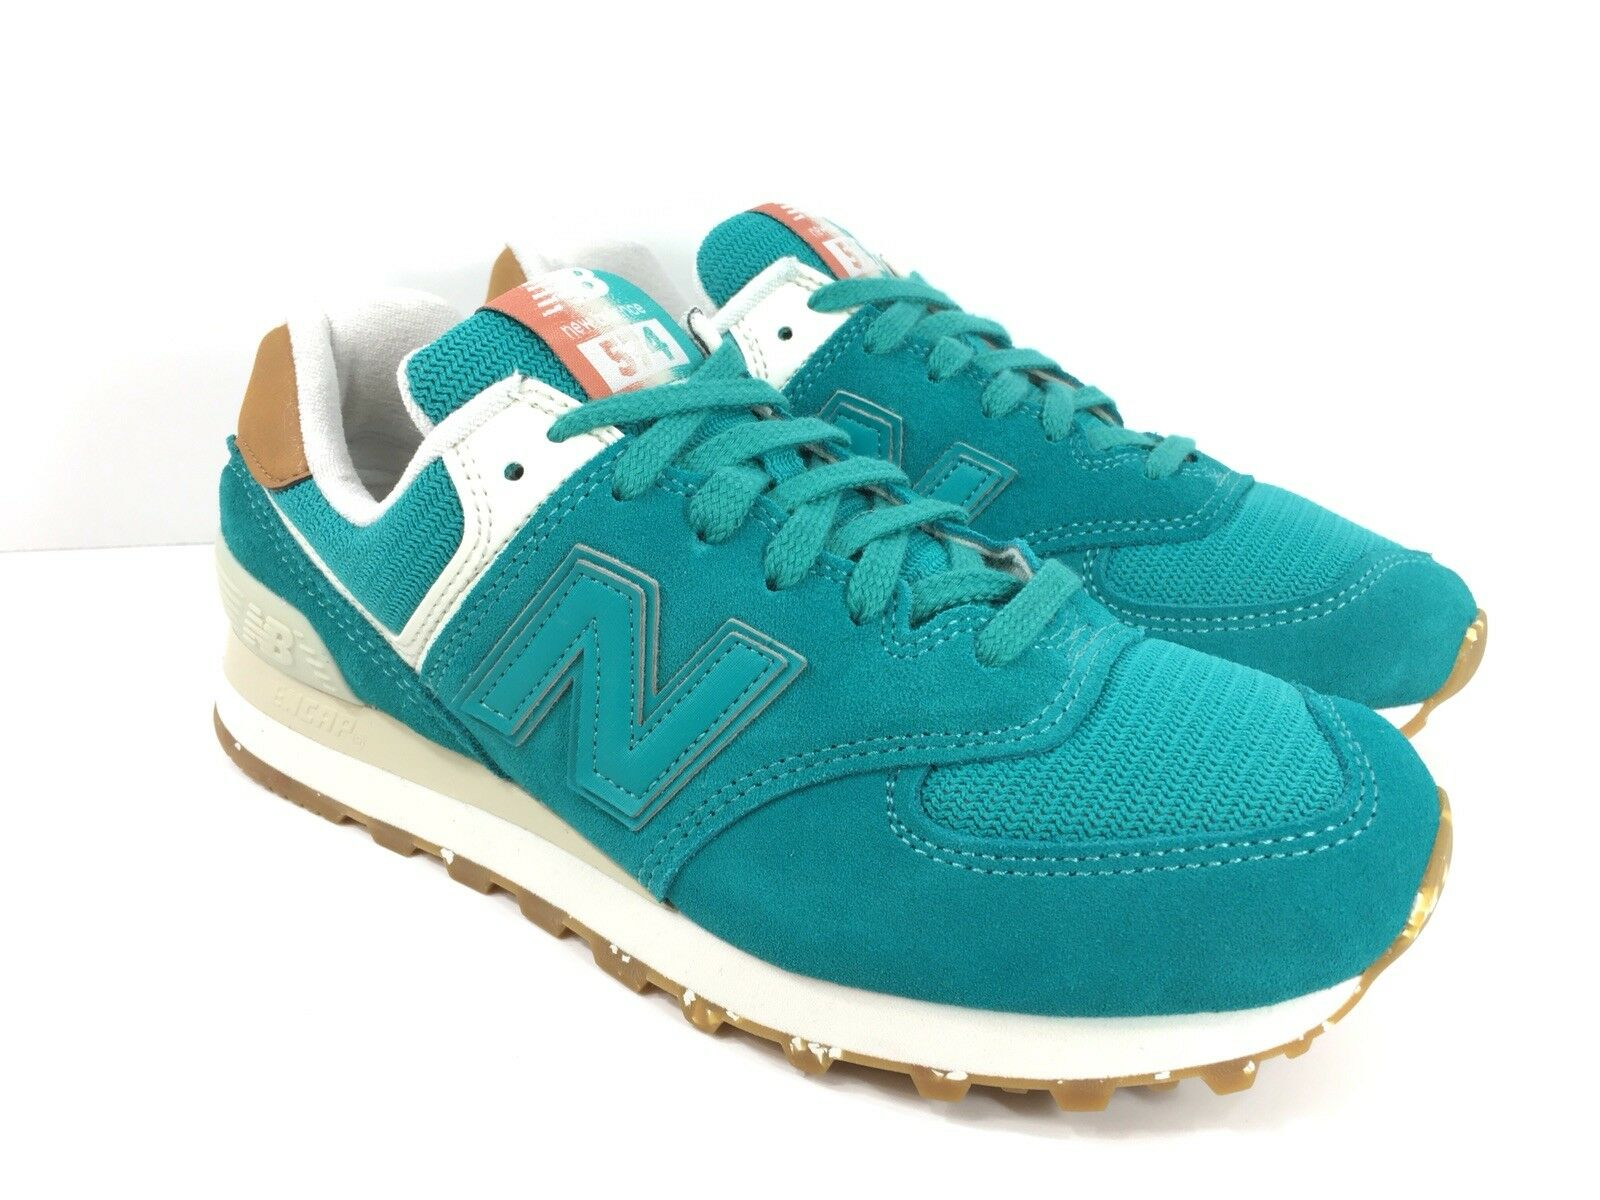 New Balance 574 Womens US Global Surf Running Training Athletic shoes Teal bluee